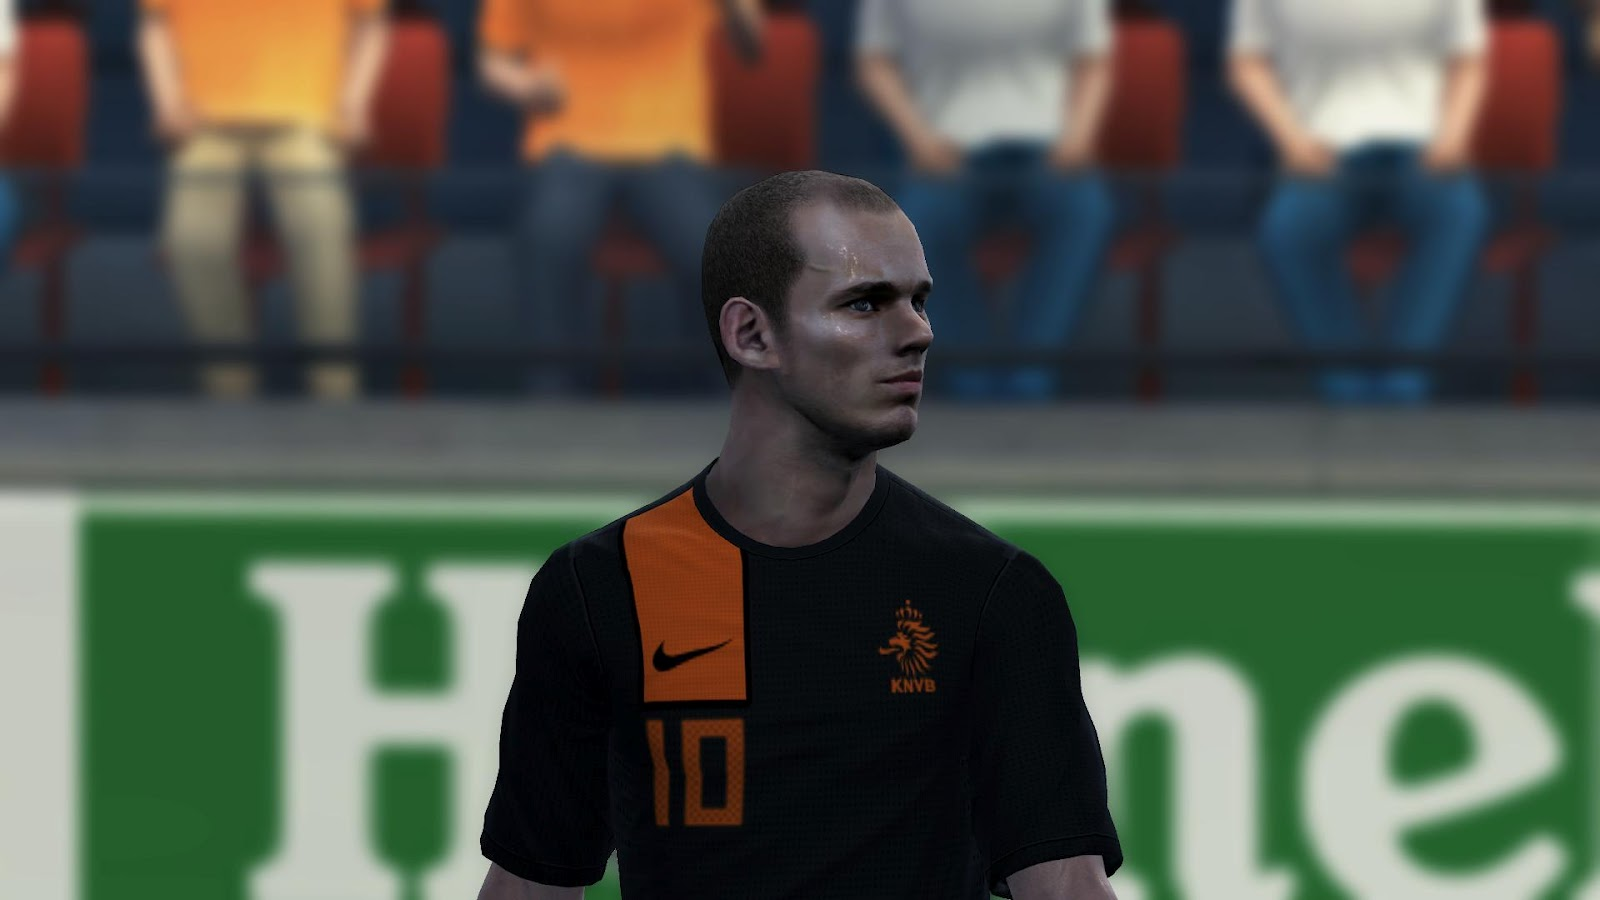 PES Patch Archives - PES Patch